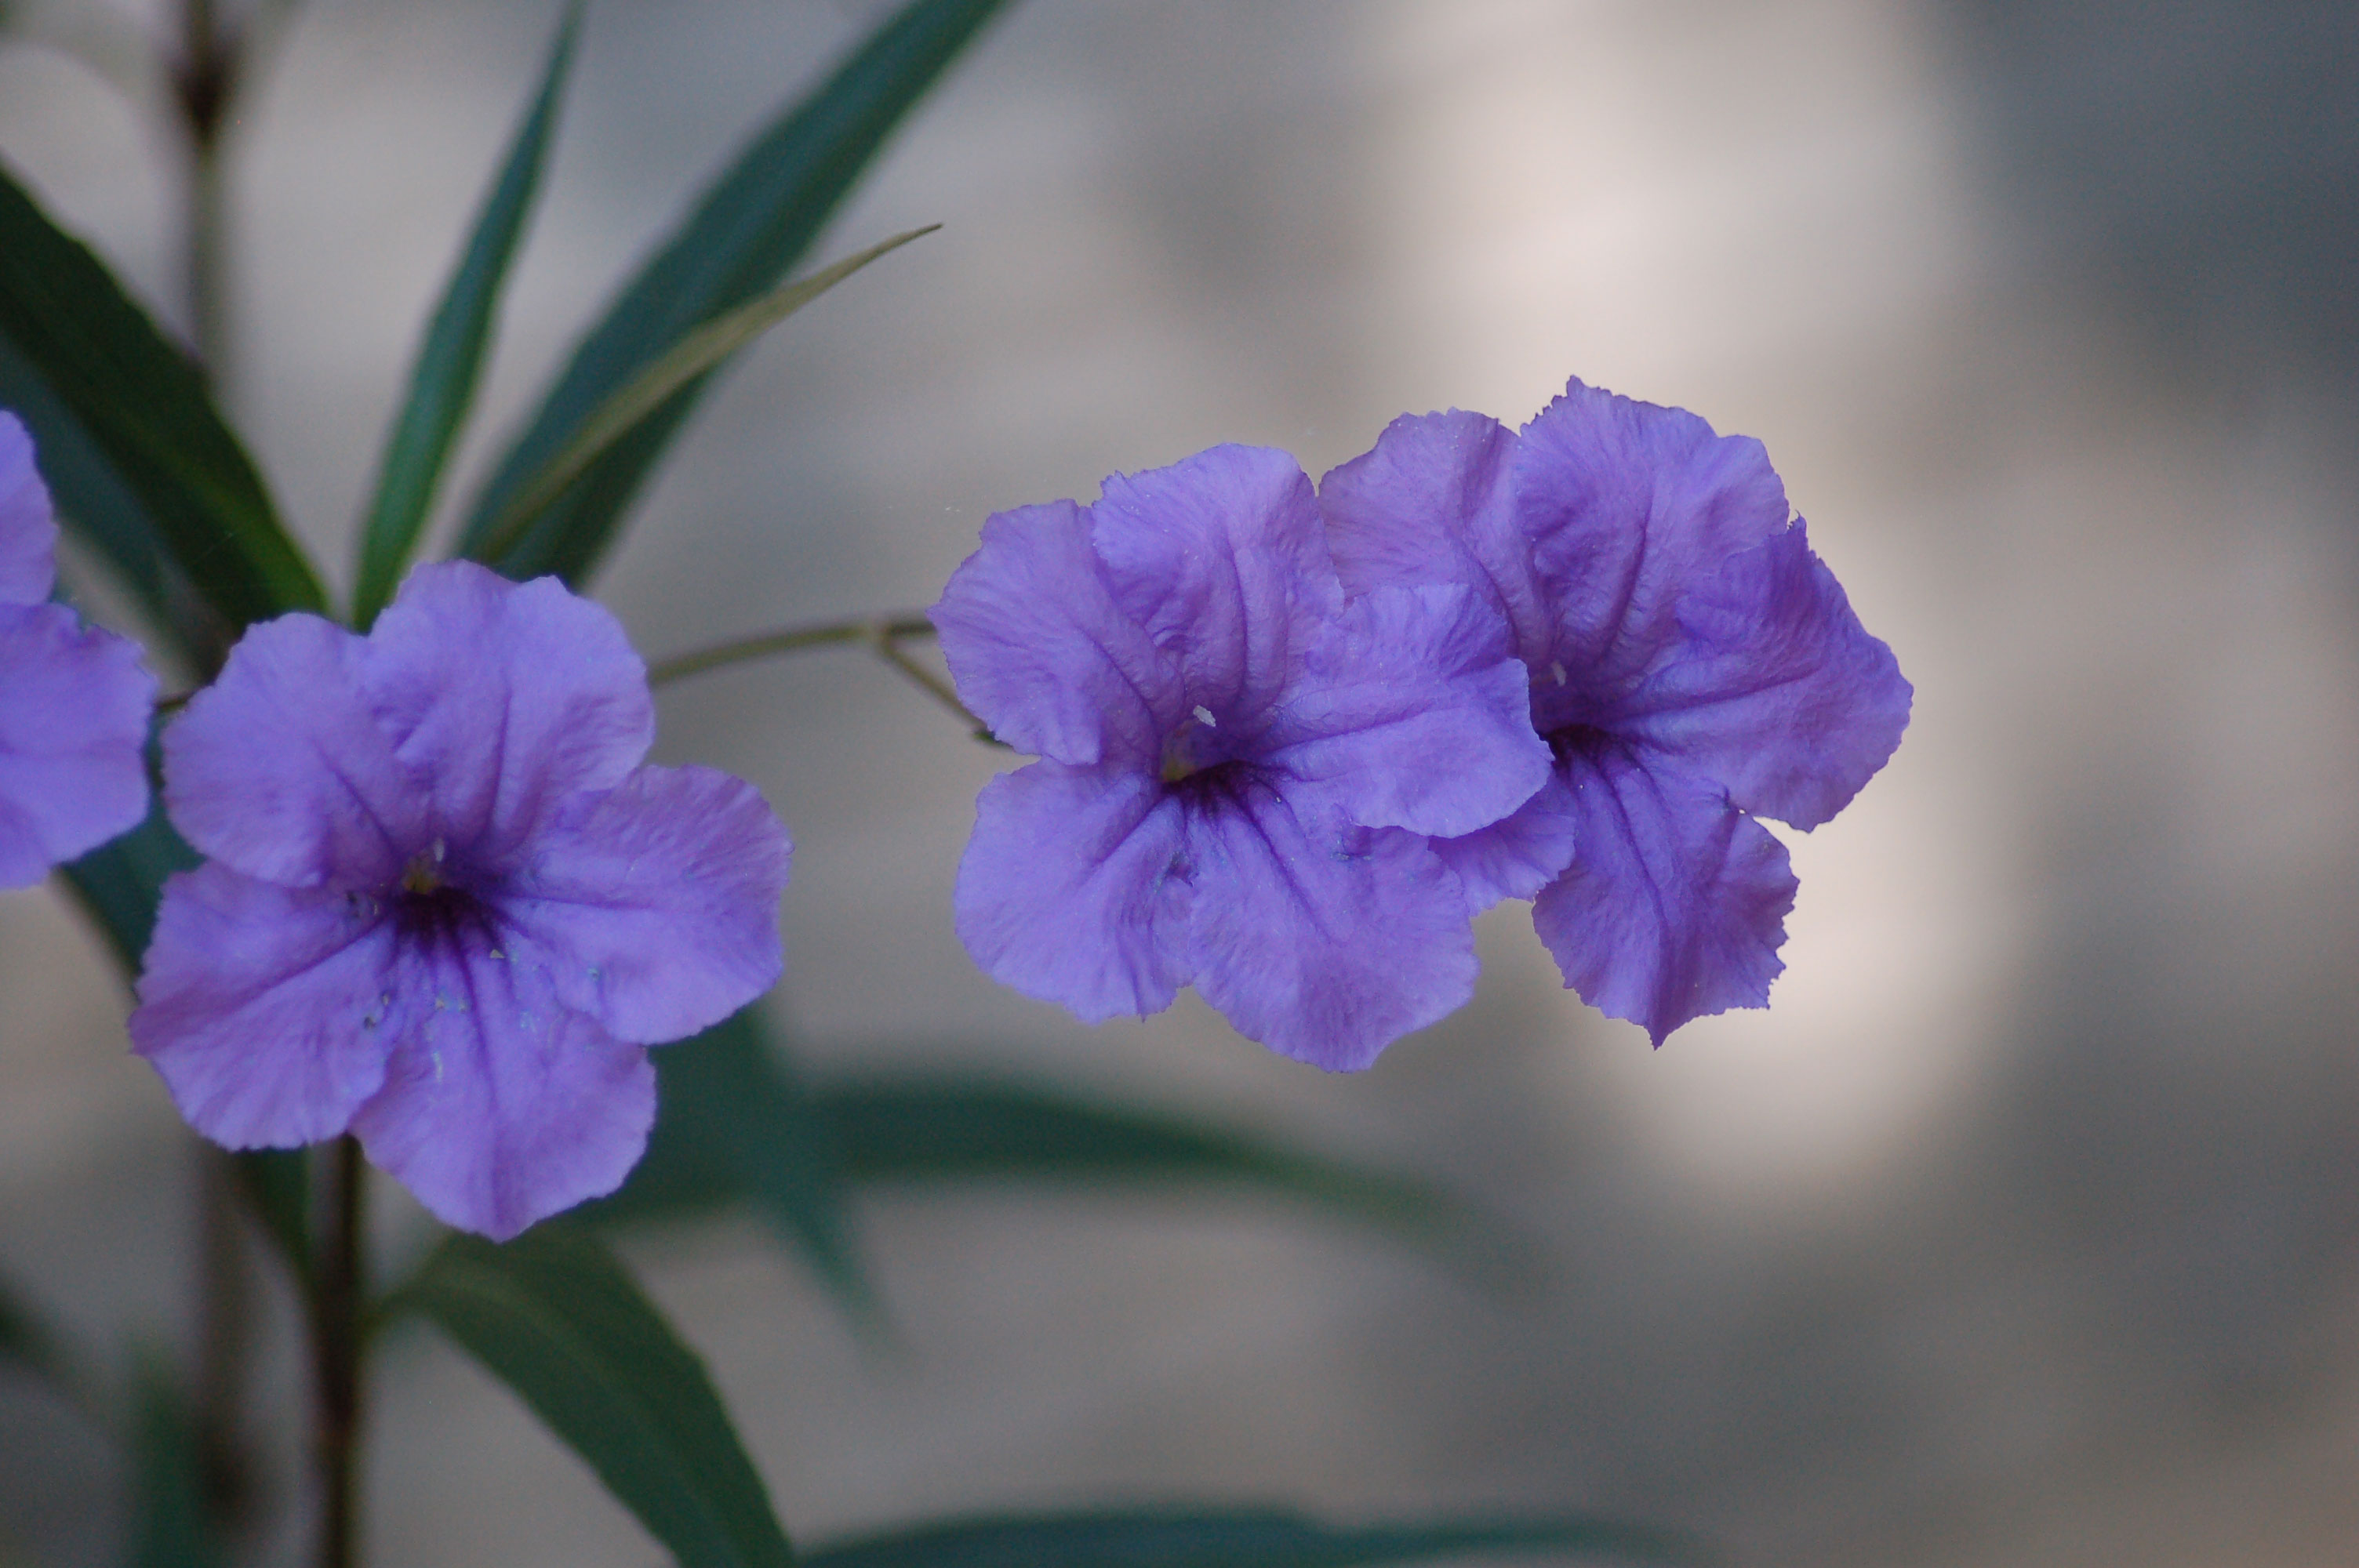 mexican-petunias-stock-photos-nature-flowers-linda-bateman